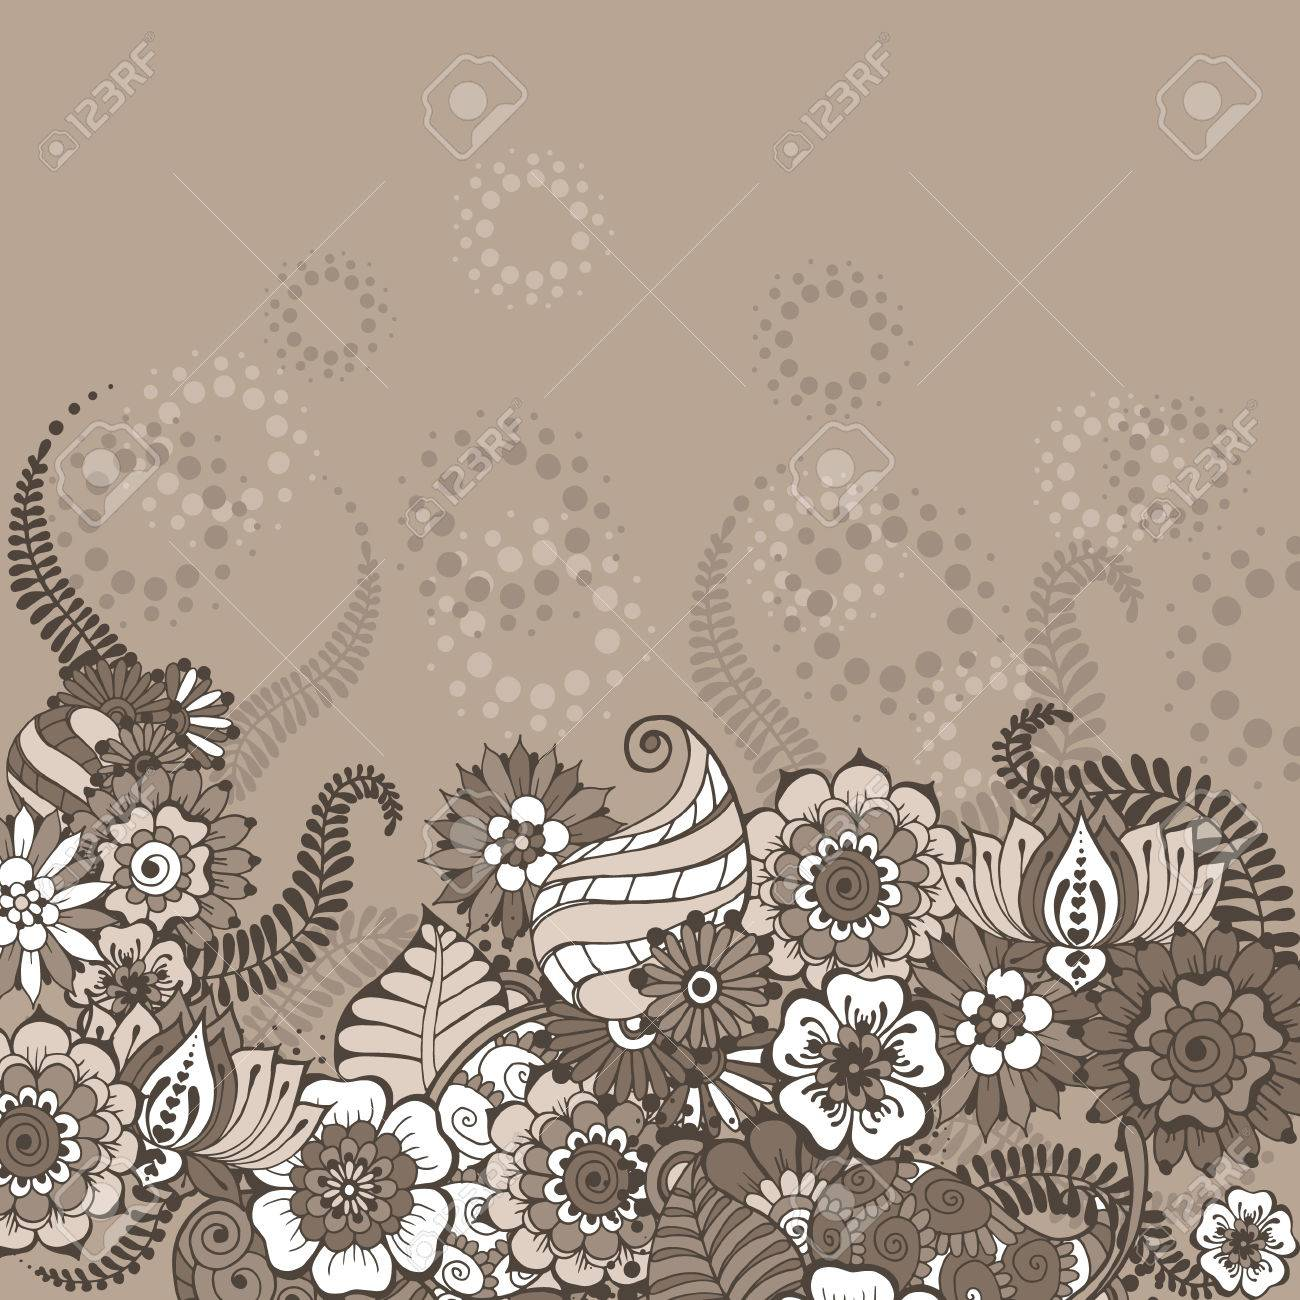 Ornate vintage vector background in mehndi style royalty free stock - Ornate Vector Card Template In Indian Mehndi Style Background In Coffee Colors Invitation